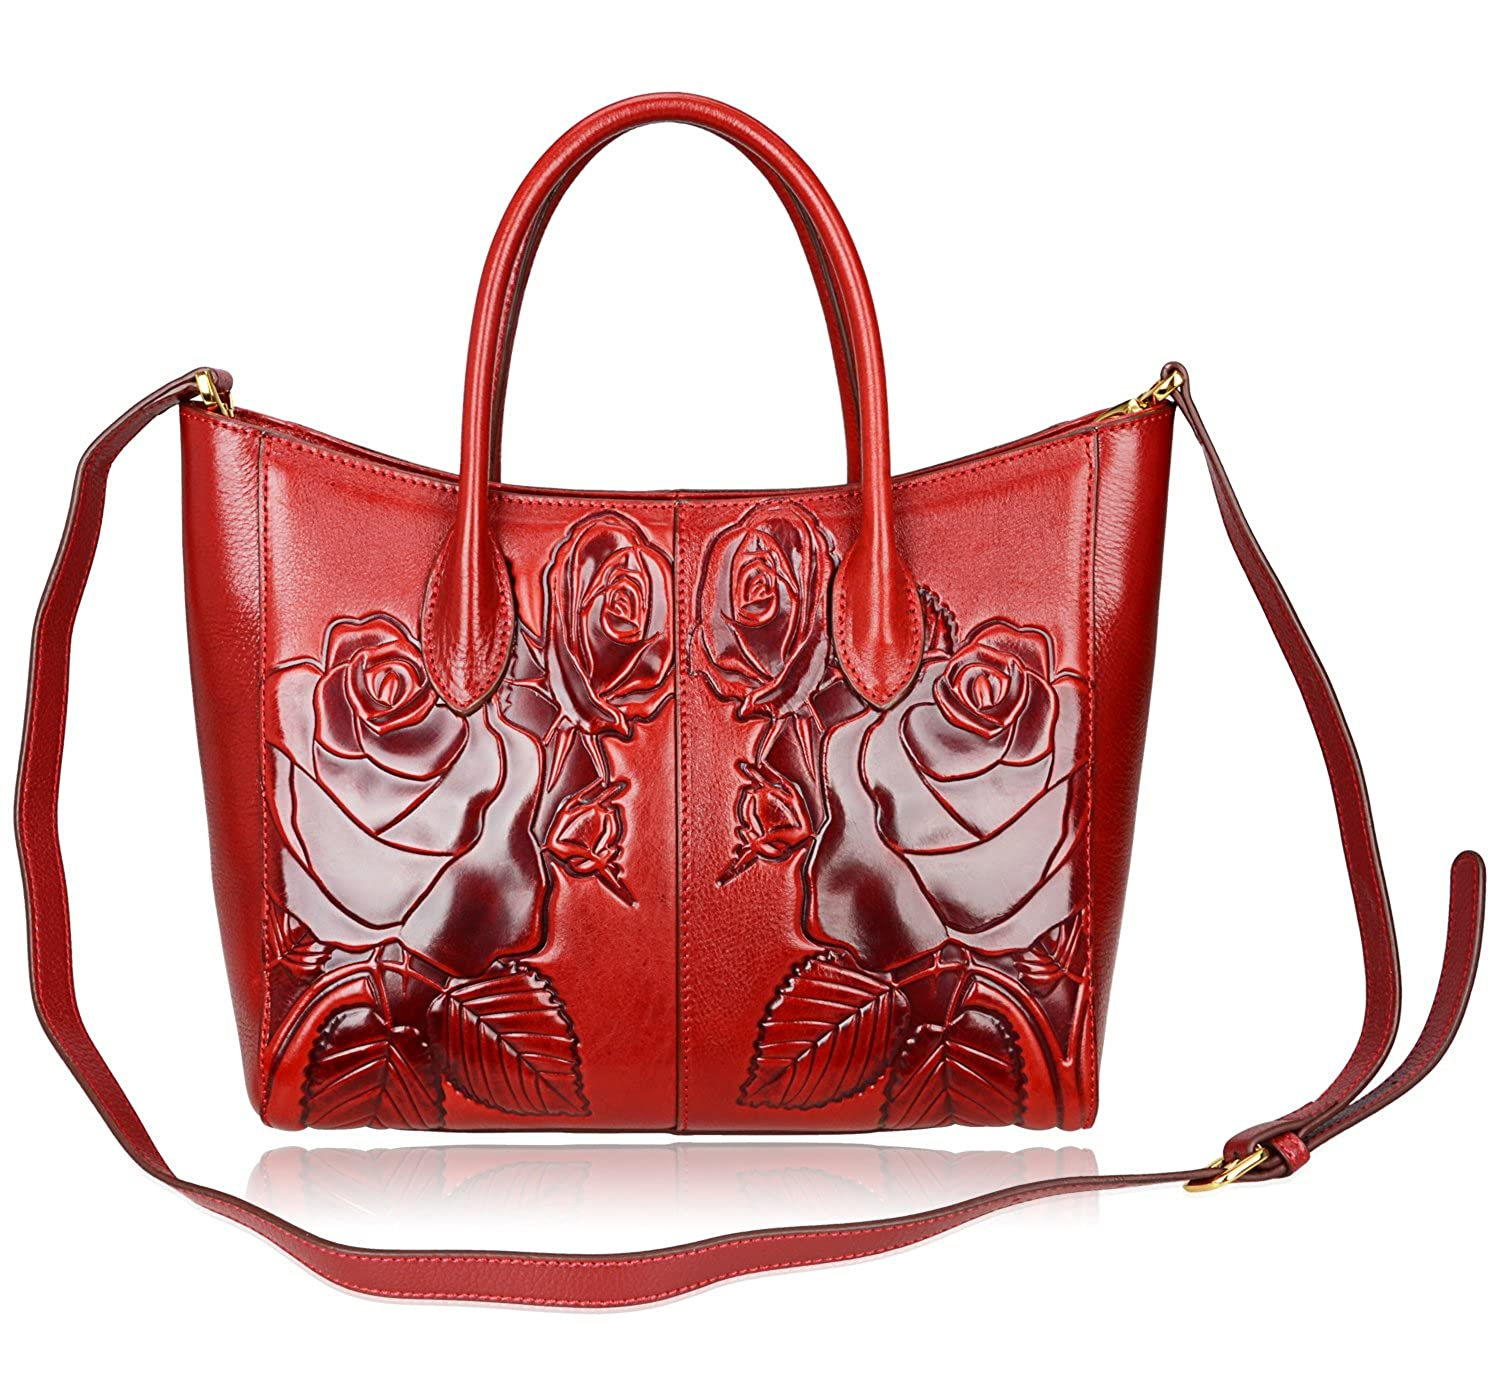 6053b3da7f PIJUSHI Floral Purses Designer Leather Handbags Shoulder Bags For Women  (65307 Red)  Handbags  Amazon.com